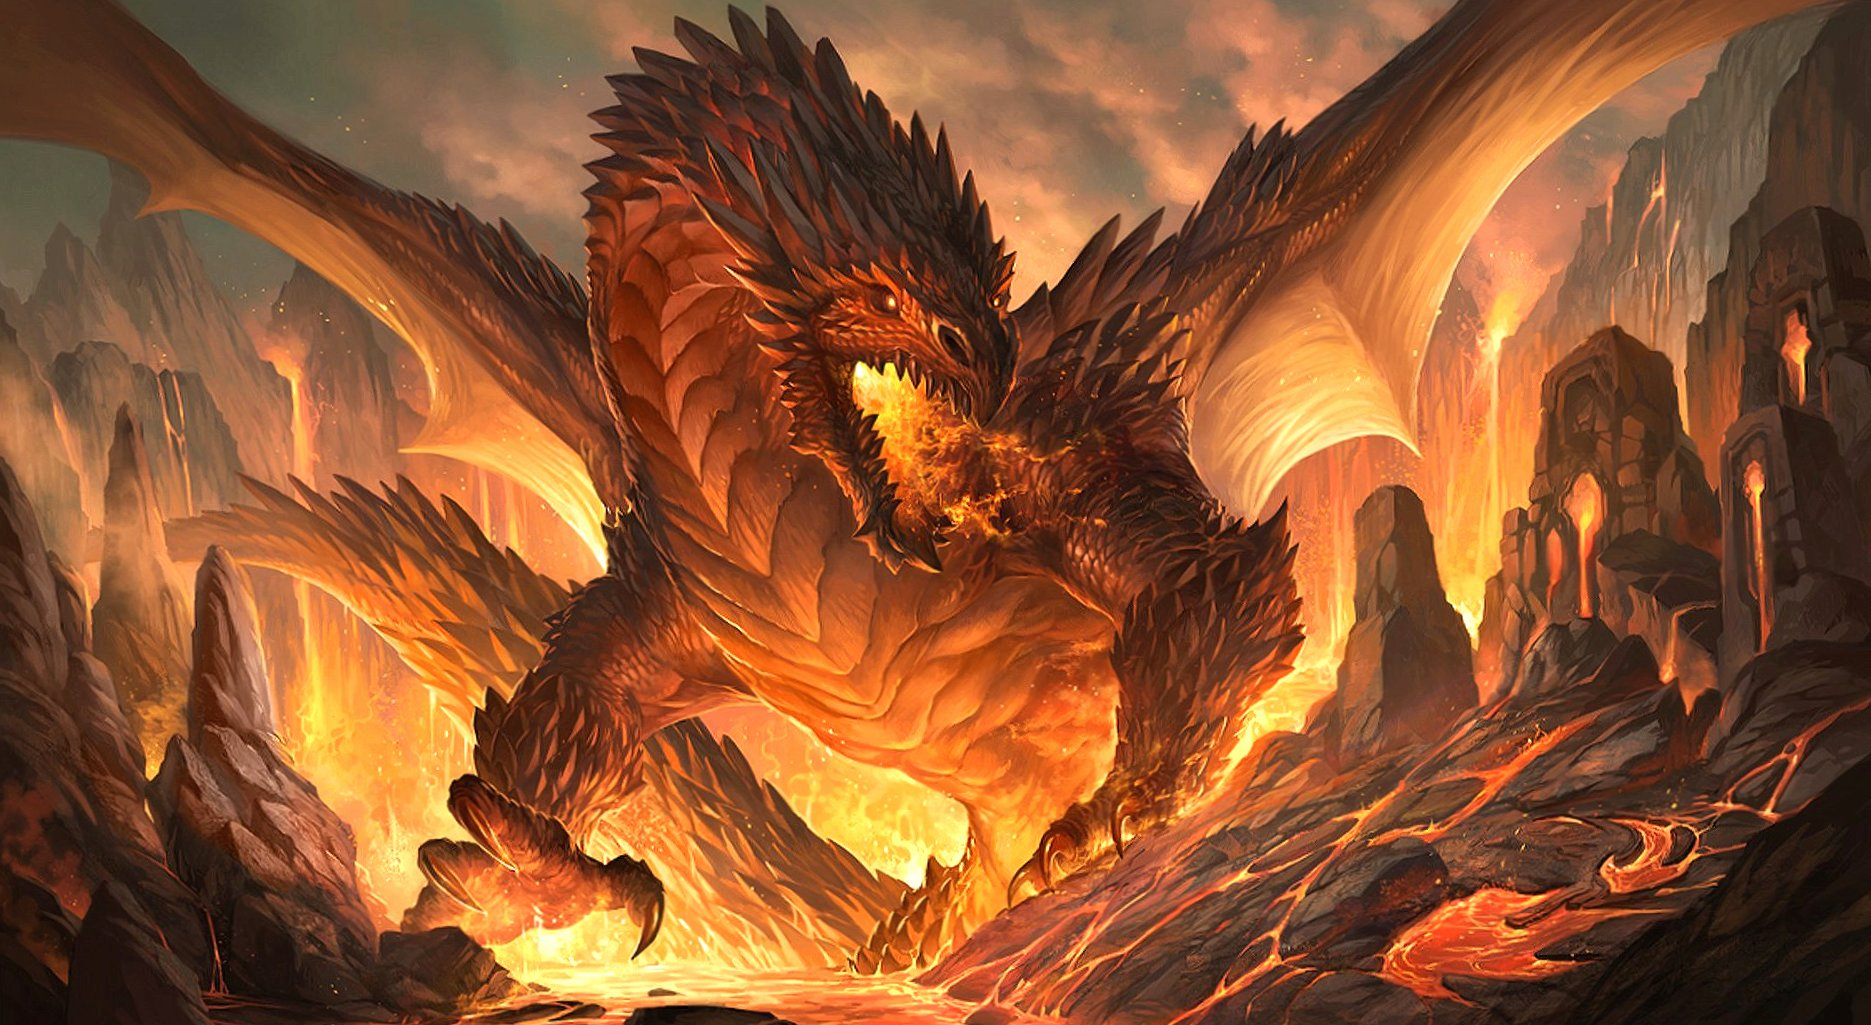 Fire dragon at 640 x 1136 iPhone 5 size wallpapers HD quality